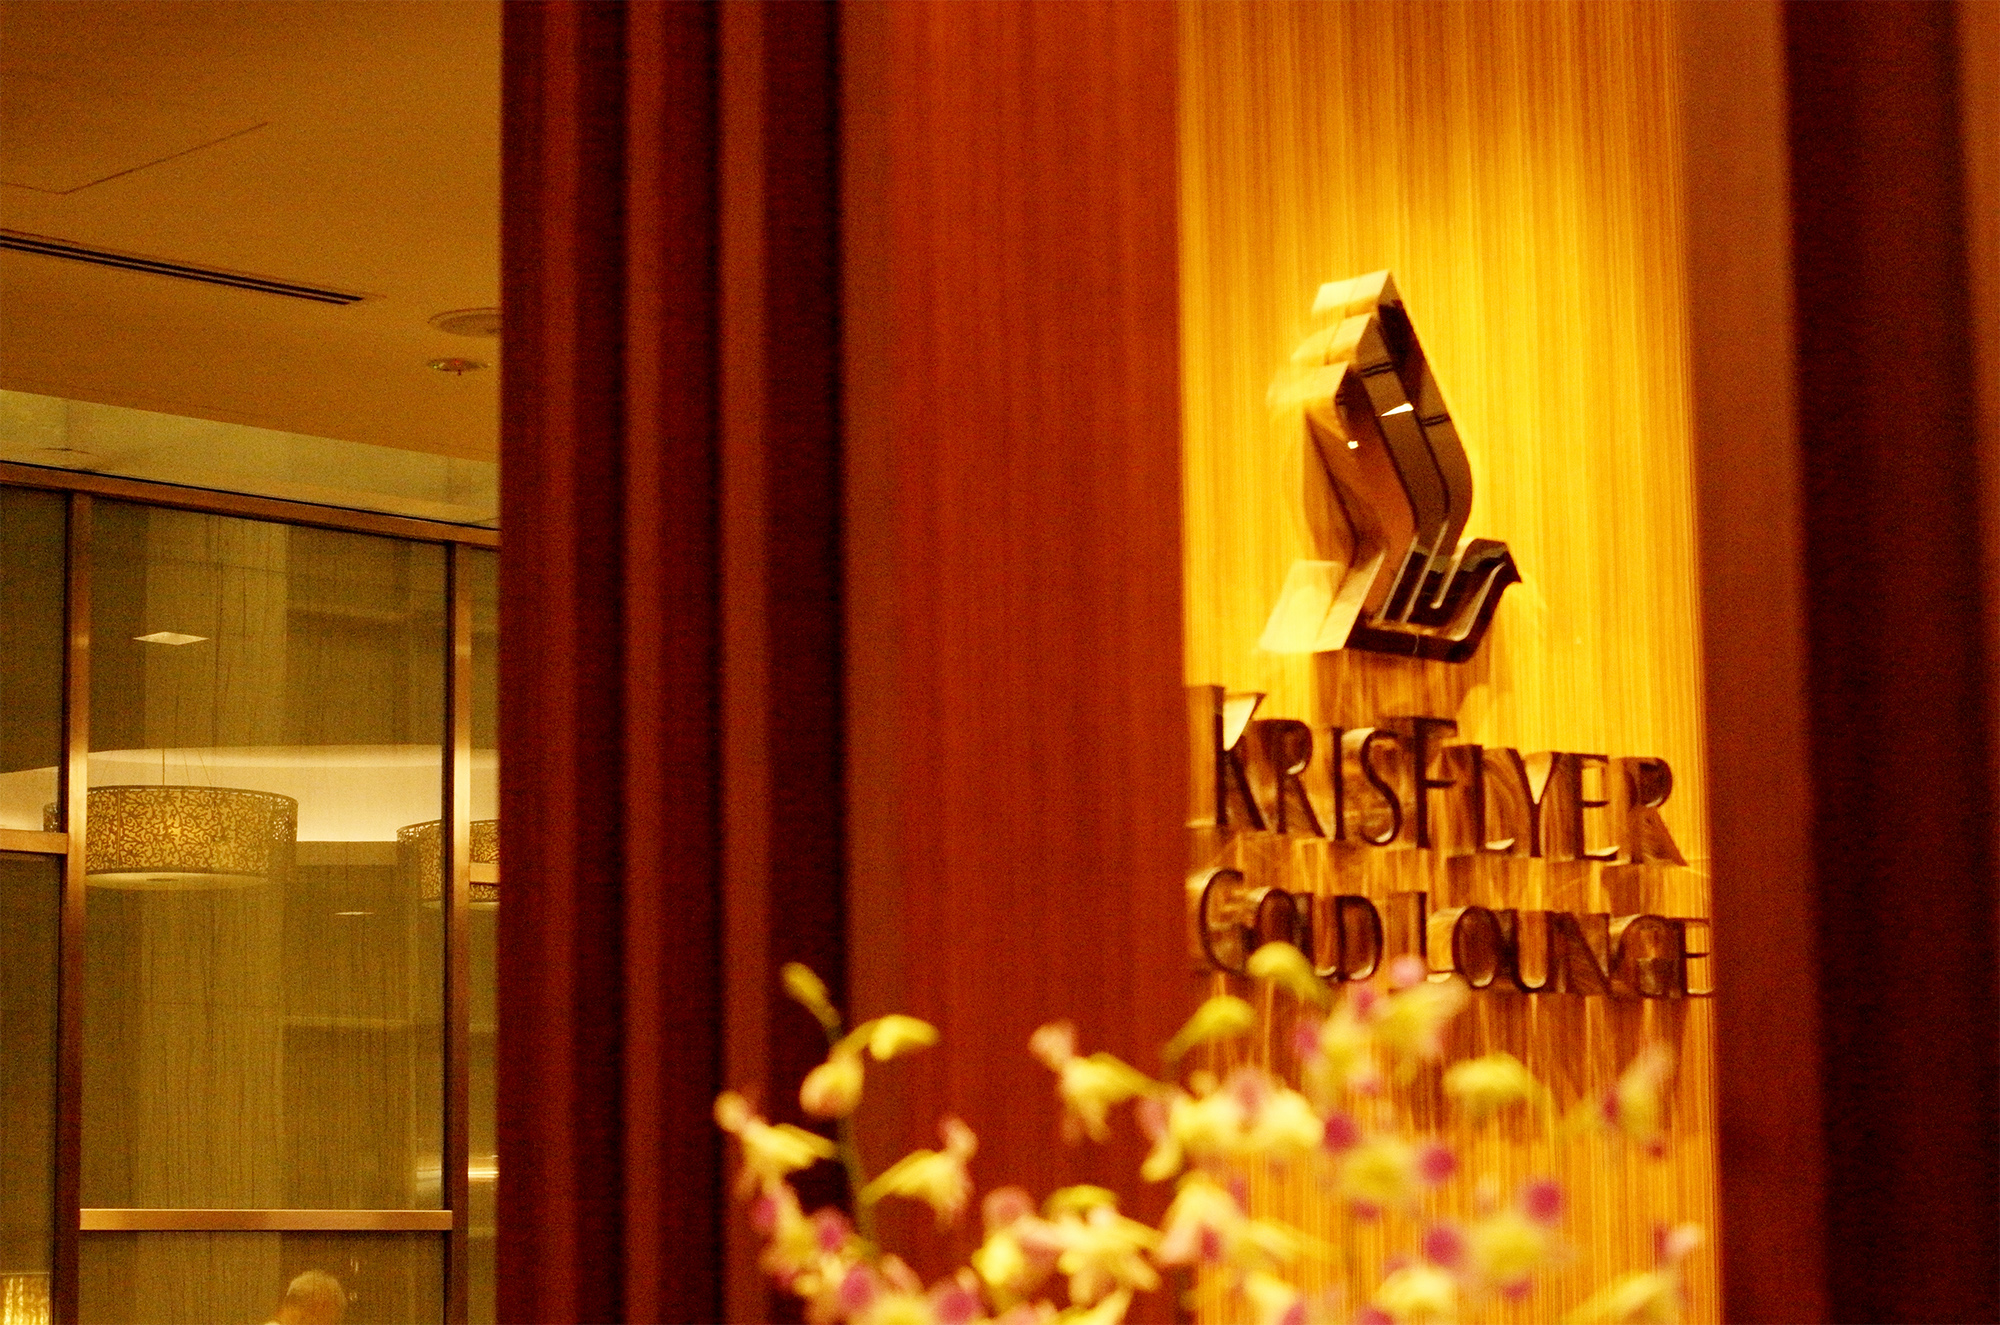 KF Gold Lounge Sign (Voyage Avance)